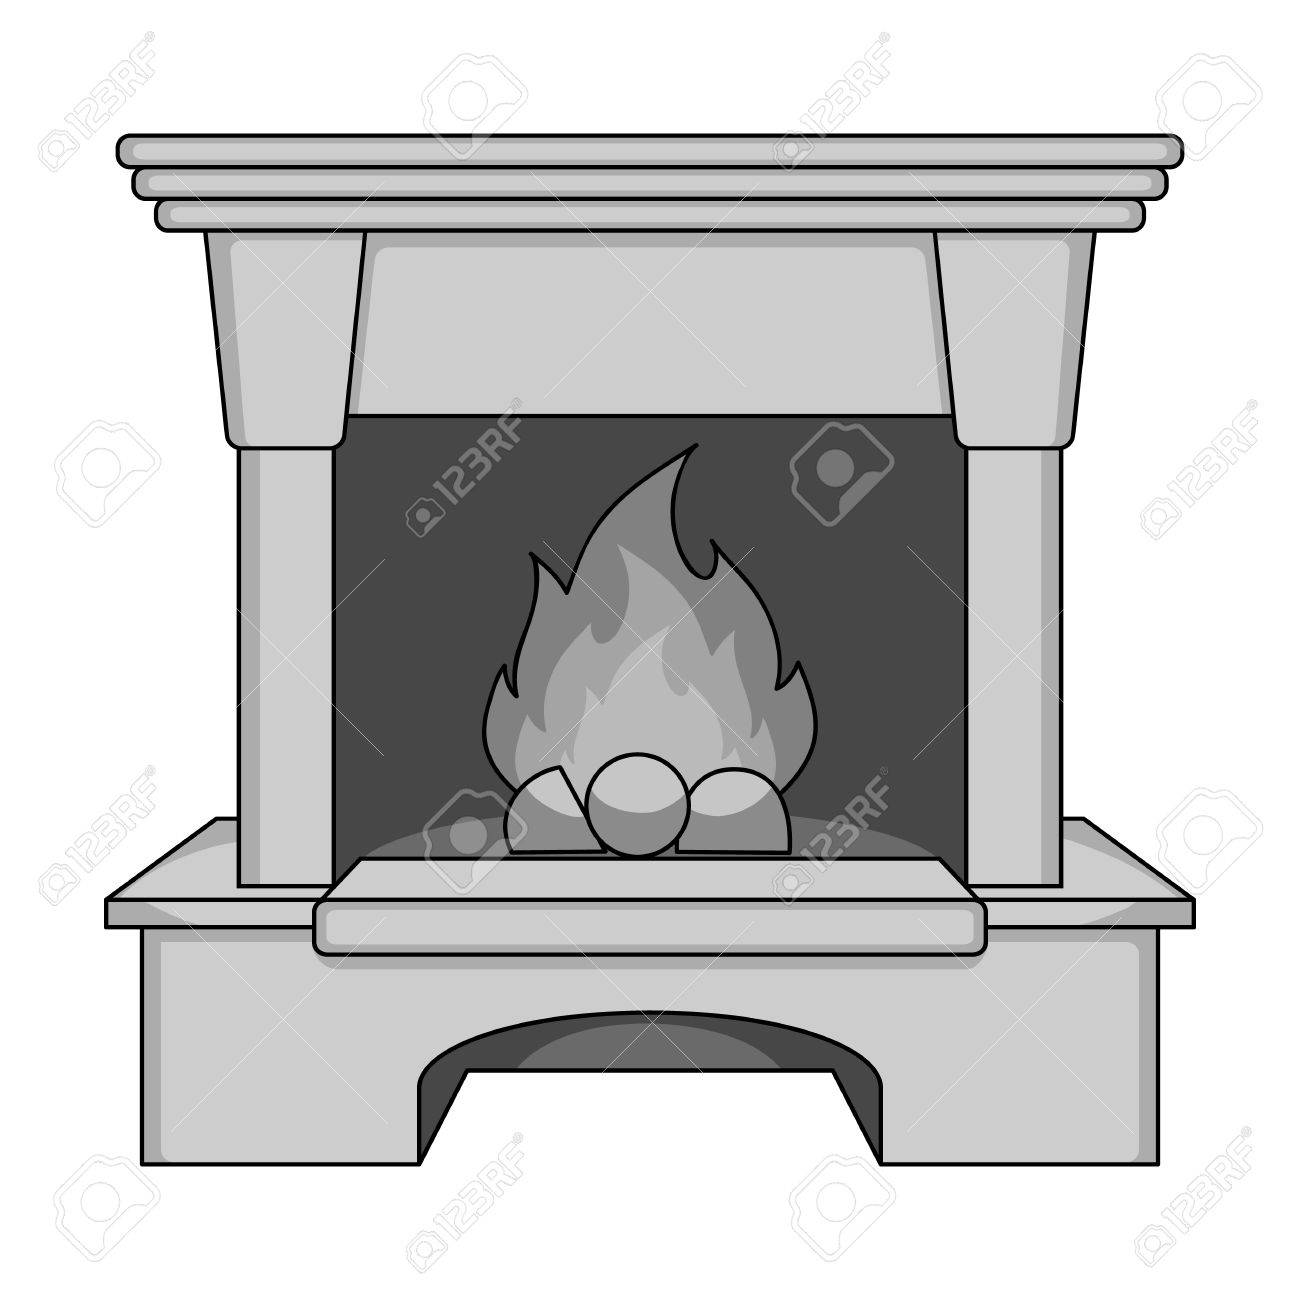 Fireplace Single Icon In Monochrome Style Vector Symbol Stock ...